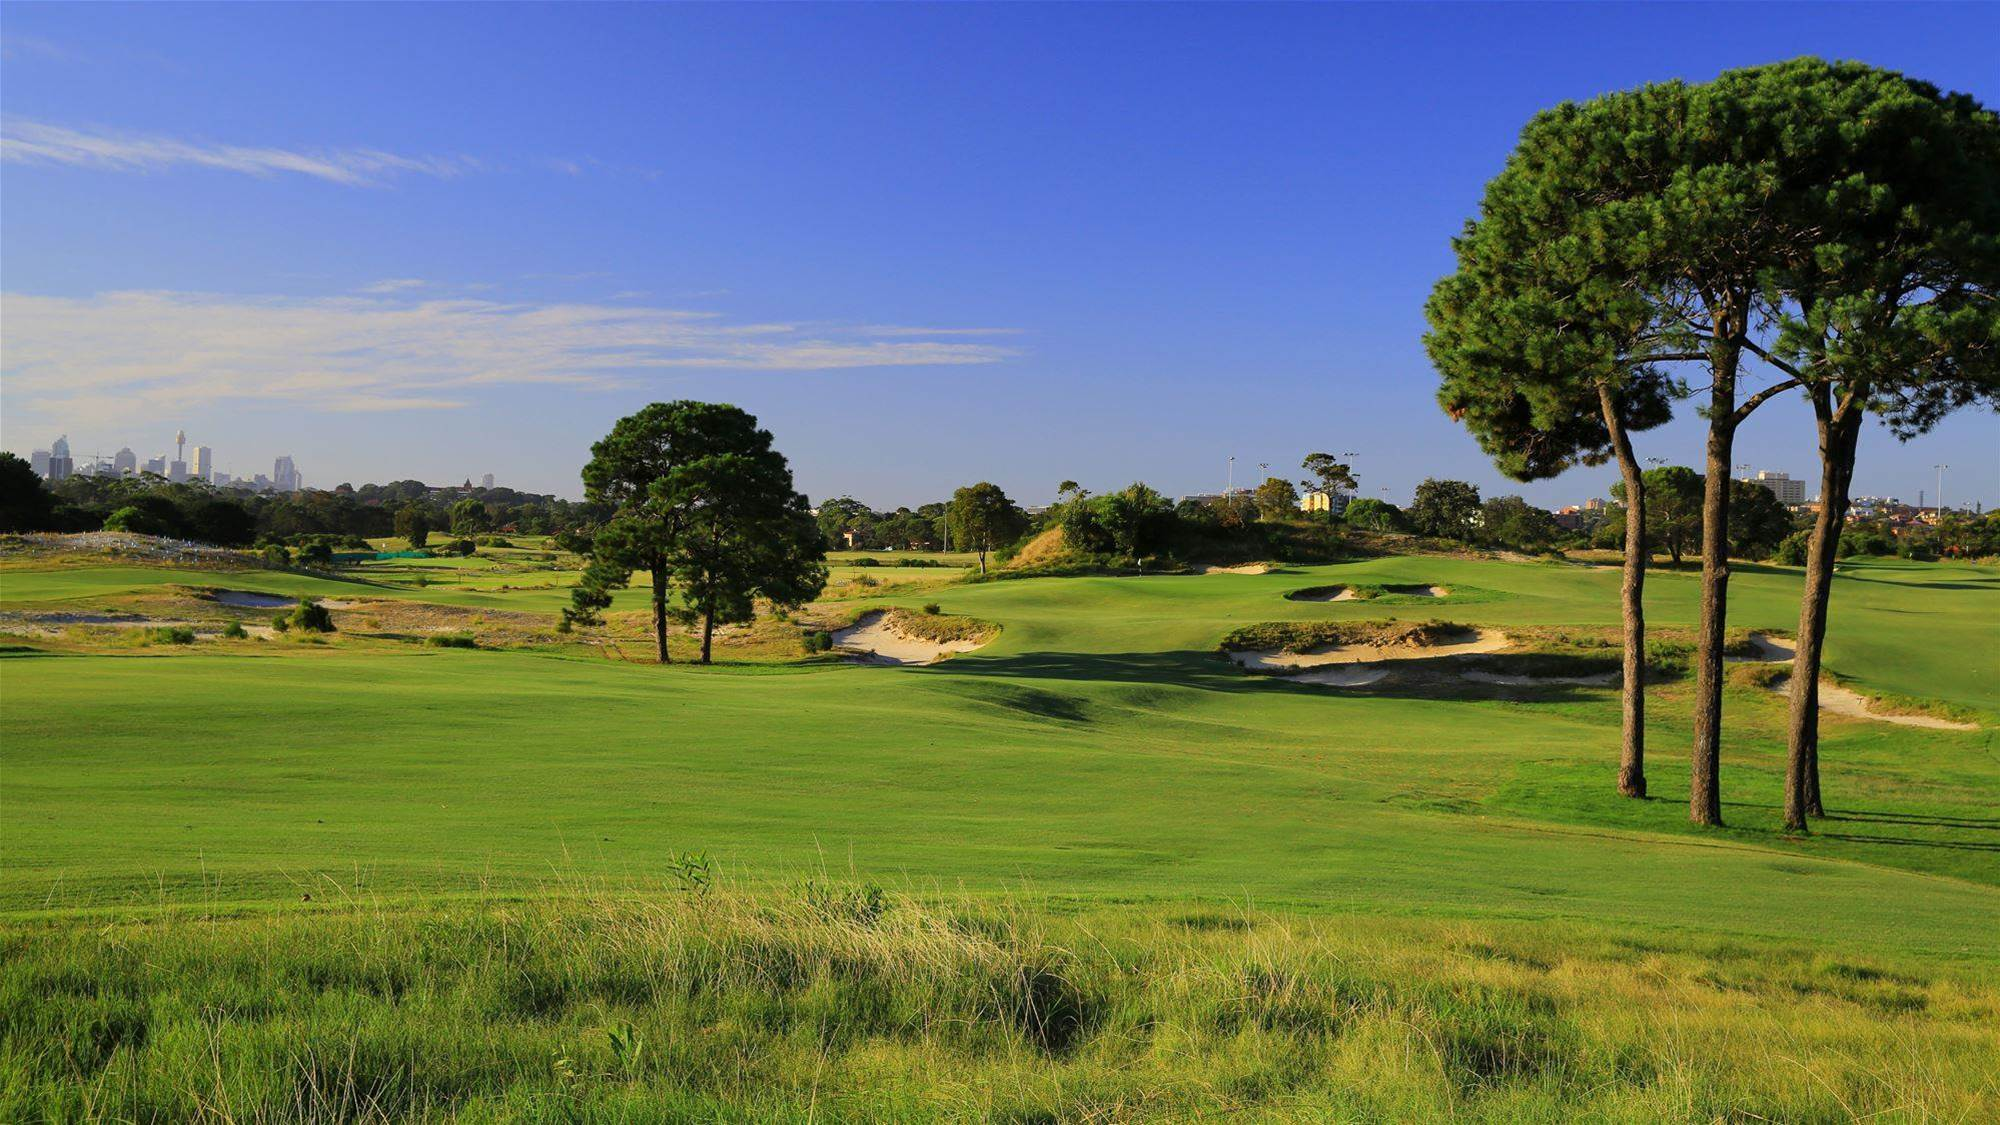 REVIEW: Bonnie Doon Golf Club